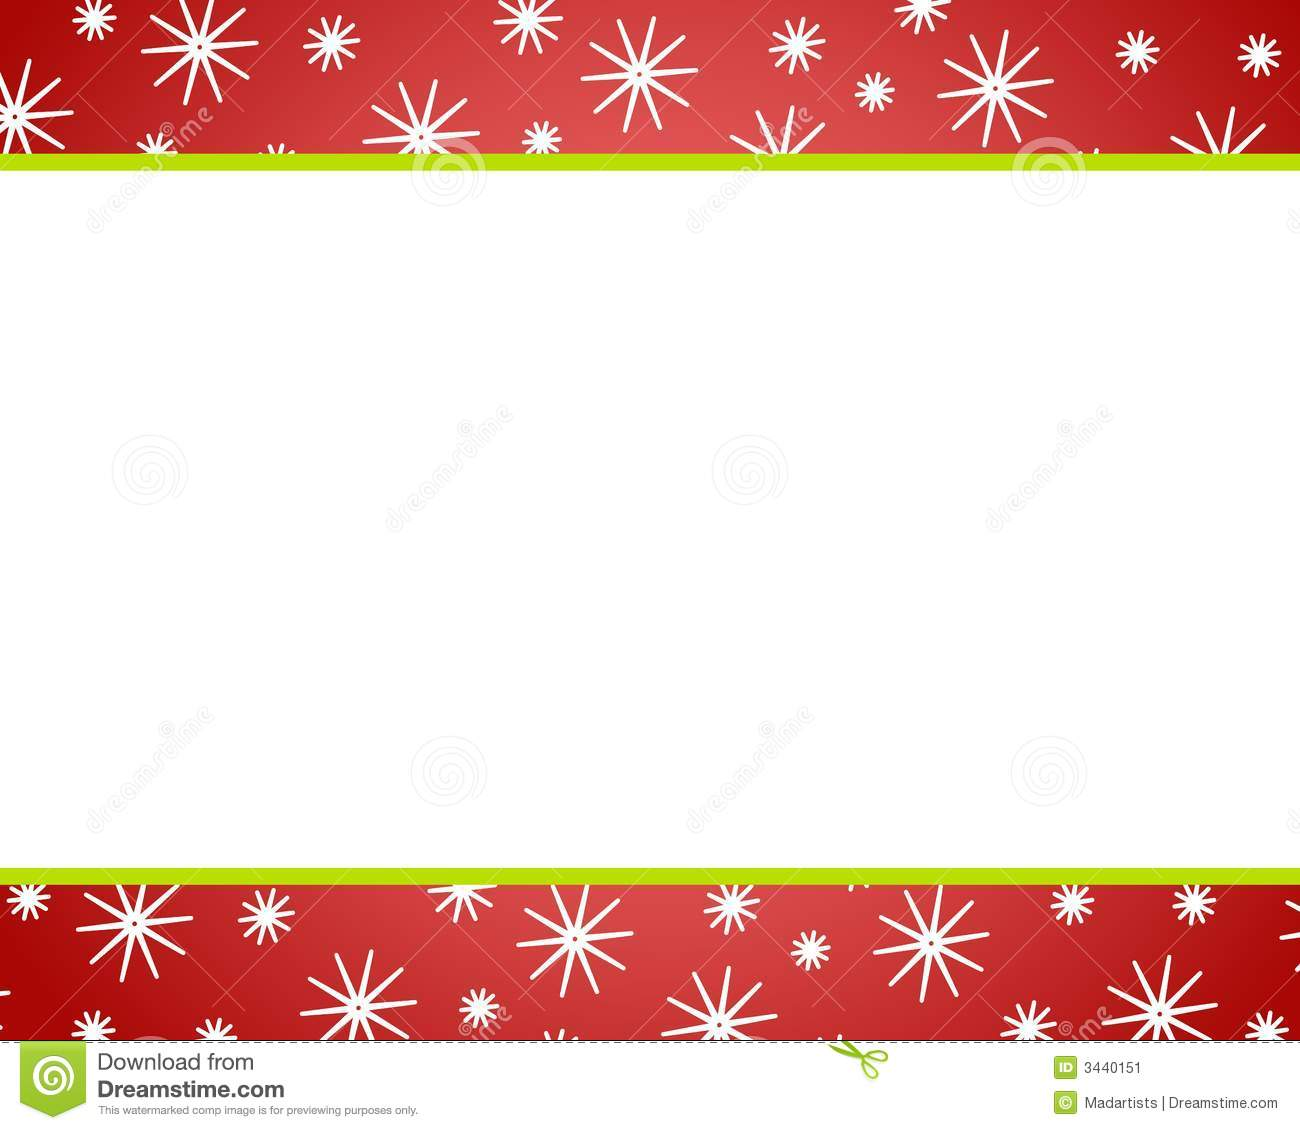 Clip art illustration featuring red christmas borders with